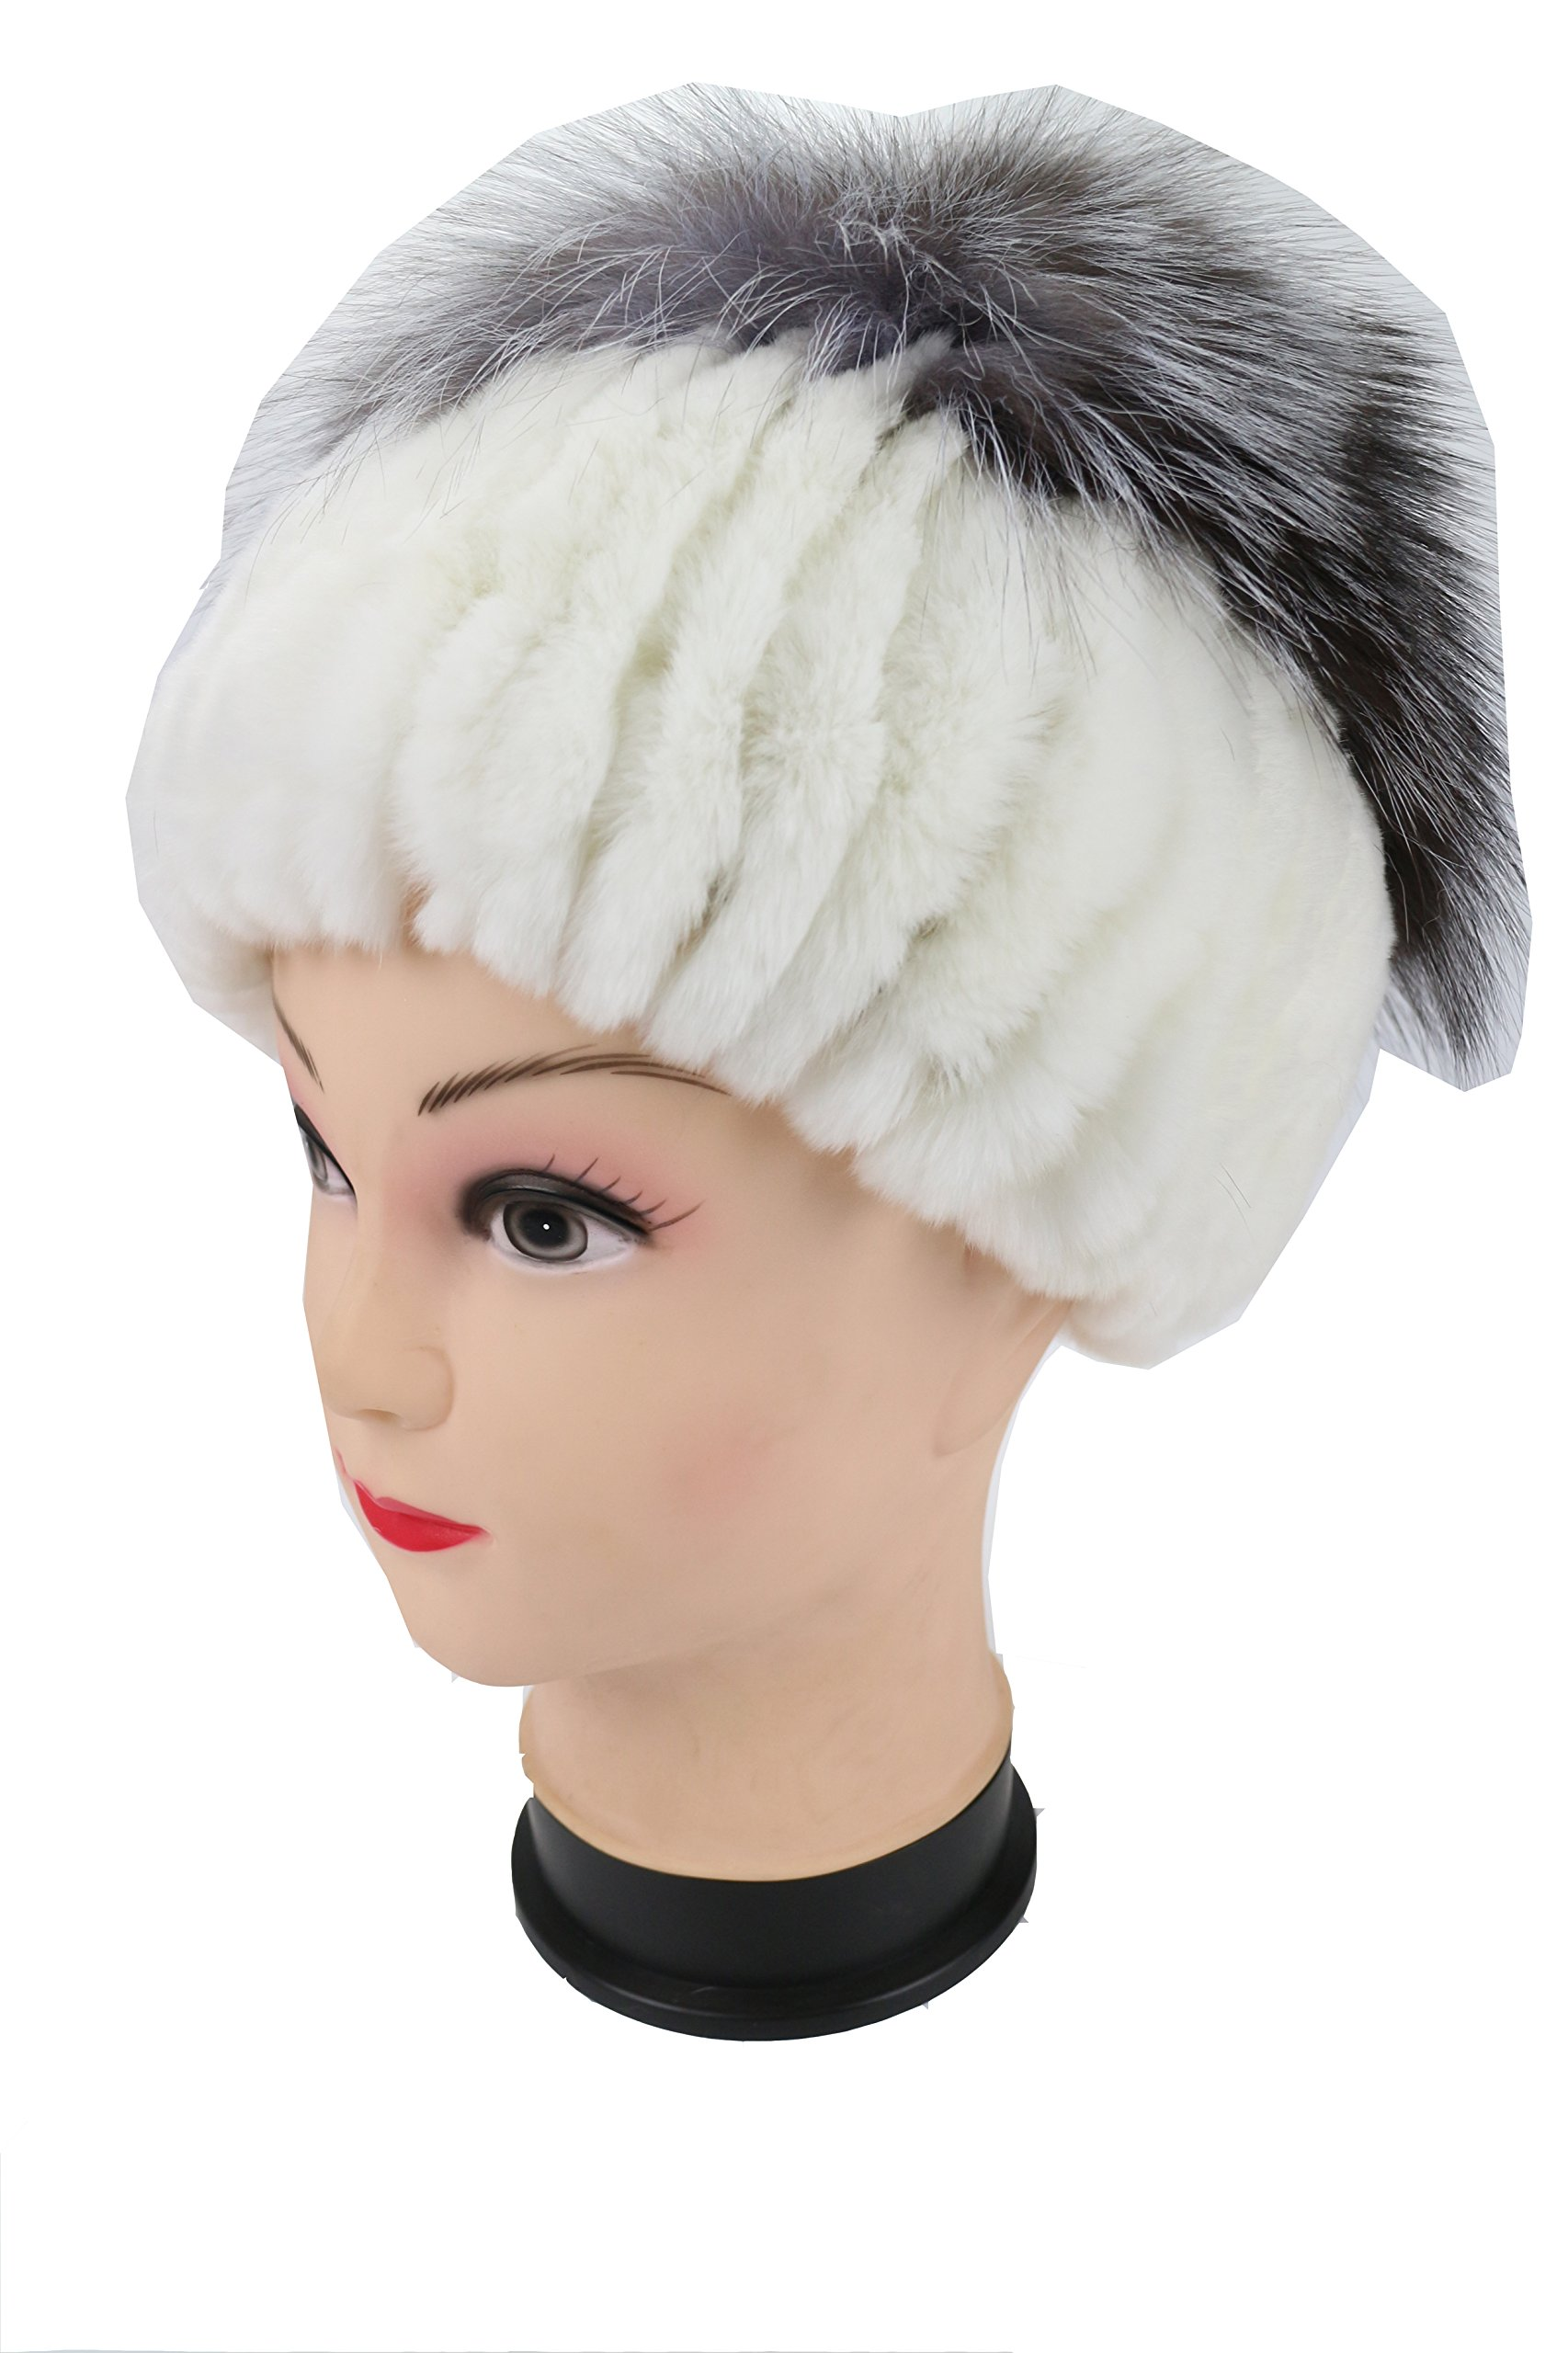 Ysting Knit Rex Rabbit Fur Beanie Hat Women's Cap with Silver Fox Fur Top Hat (B)